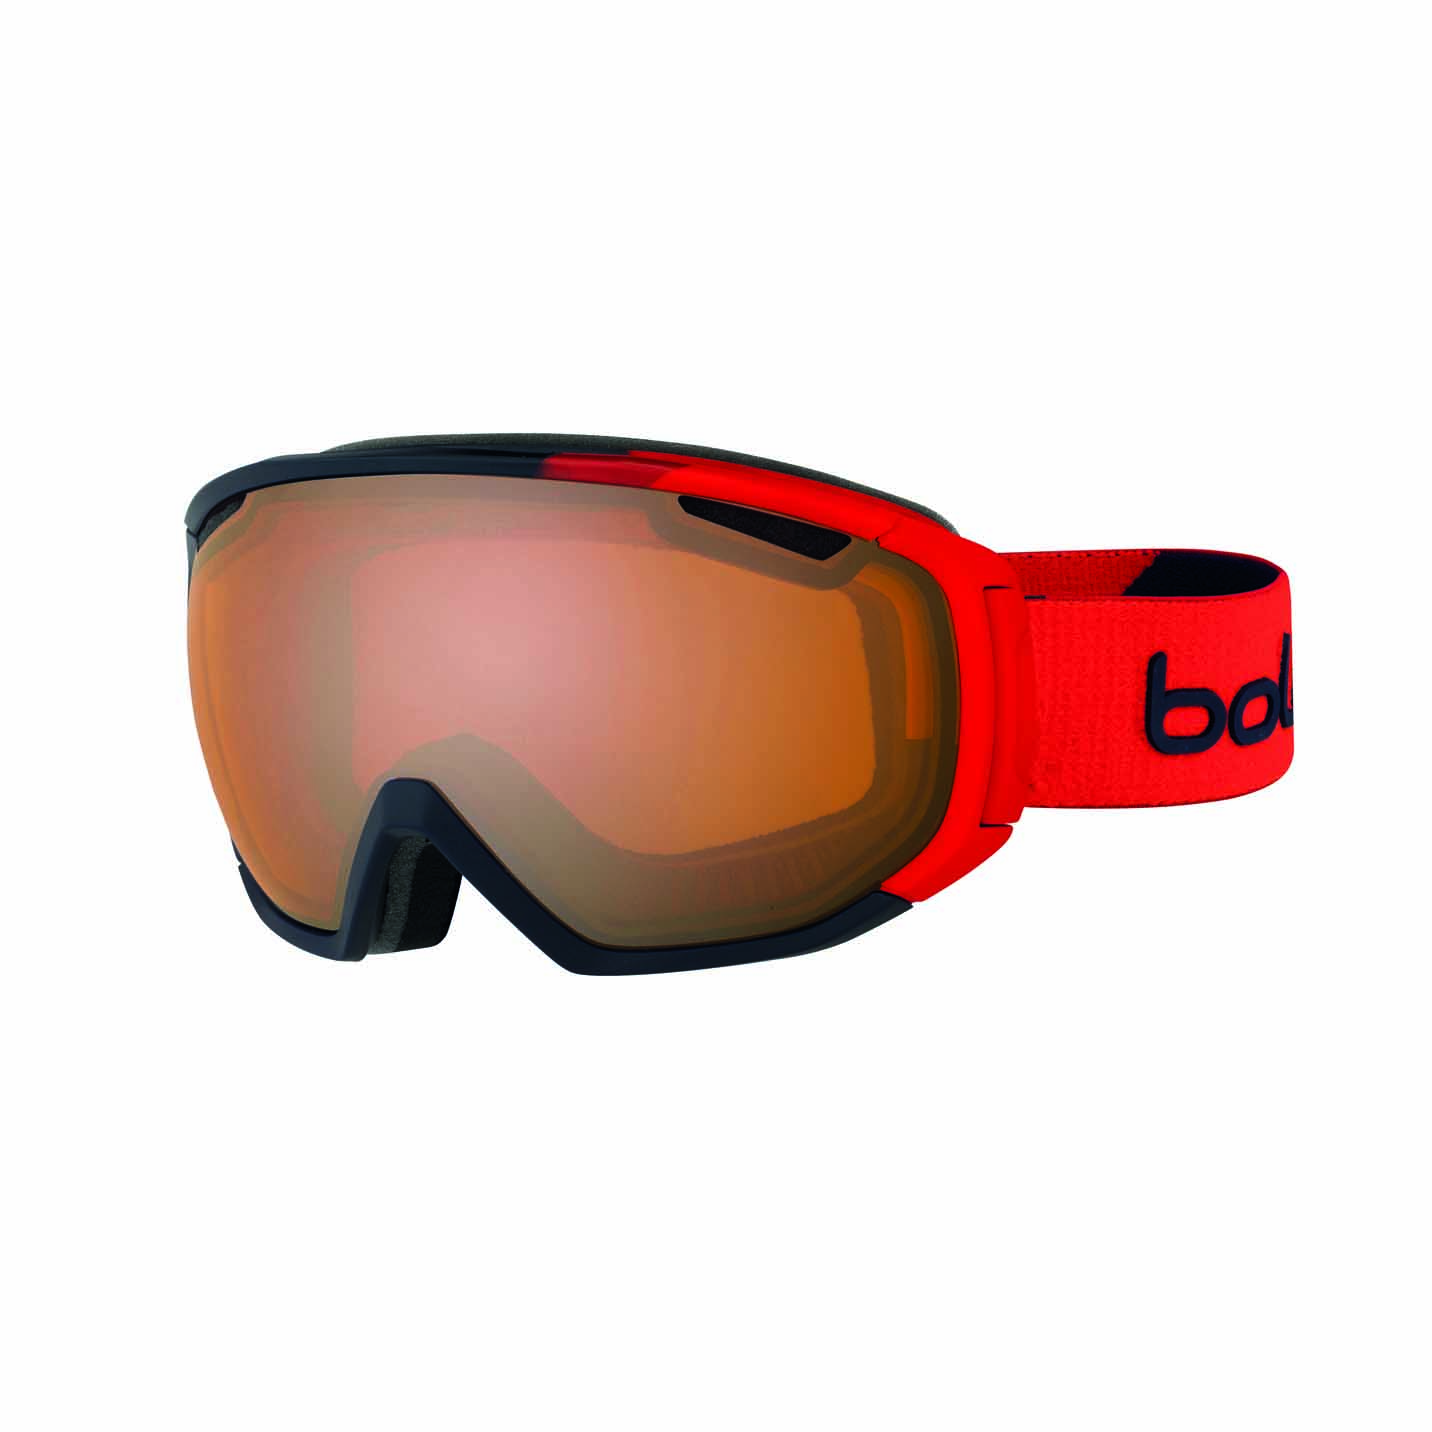 2017-18 Bolle Tsar Ski And Snowboard Goggle matte red